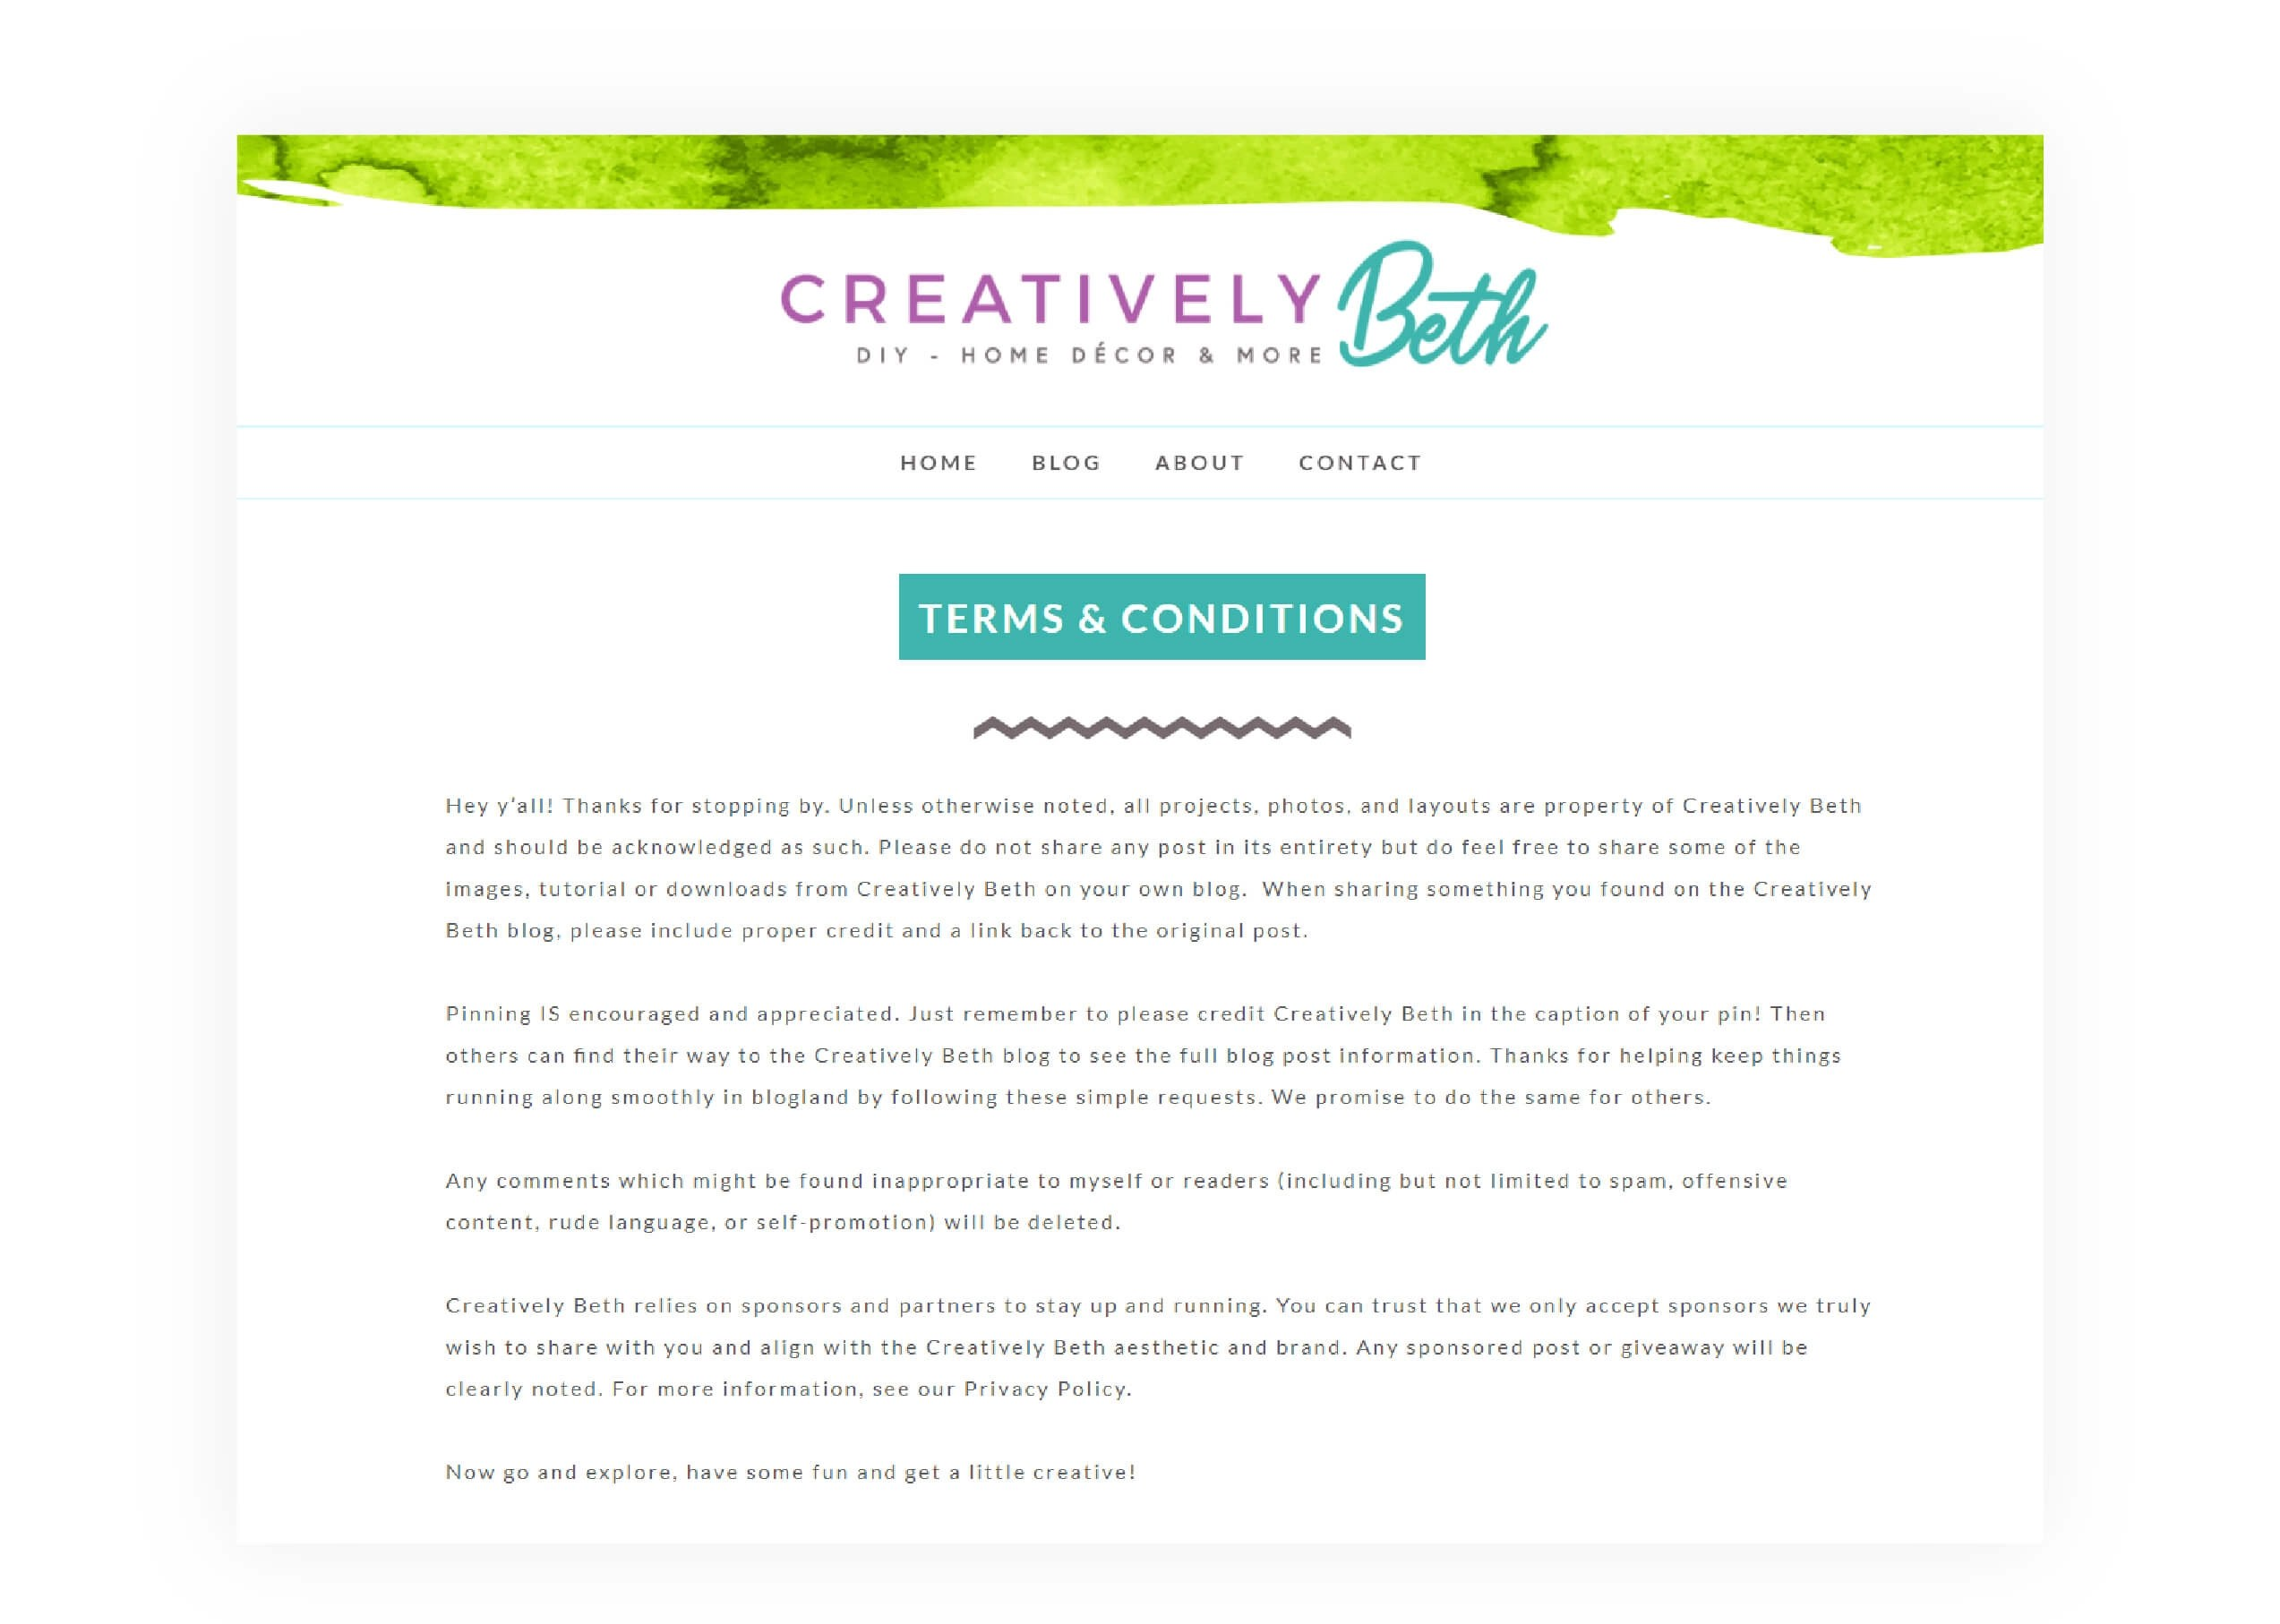 Creatively Beth - Legal Page Design - MintSwift